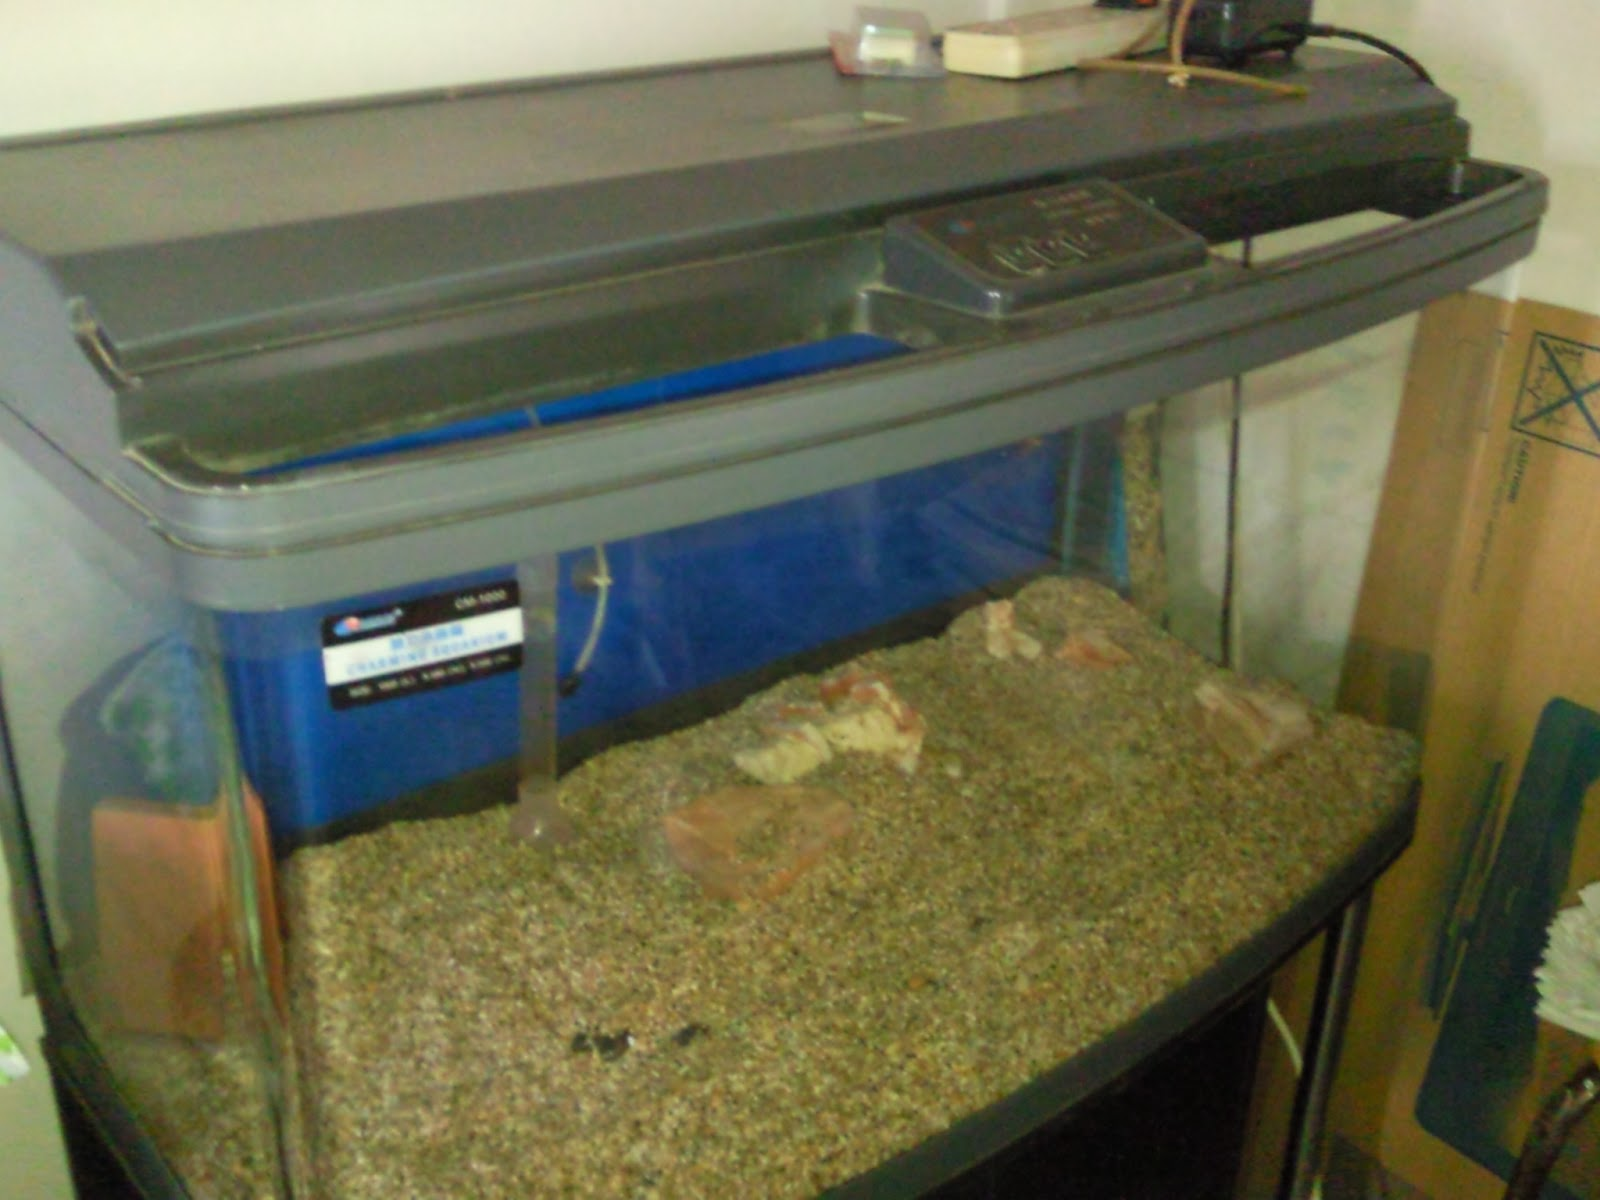 Fish aquarium tanks for sale - 3 Feet Fish Tank With Cabinet Full Asscerrioes Lightings Pumps Etc